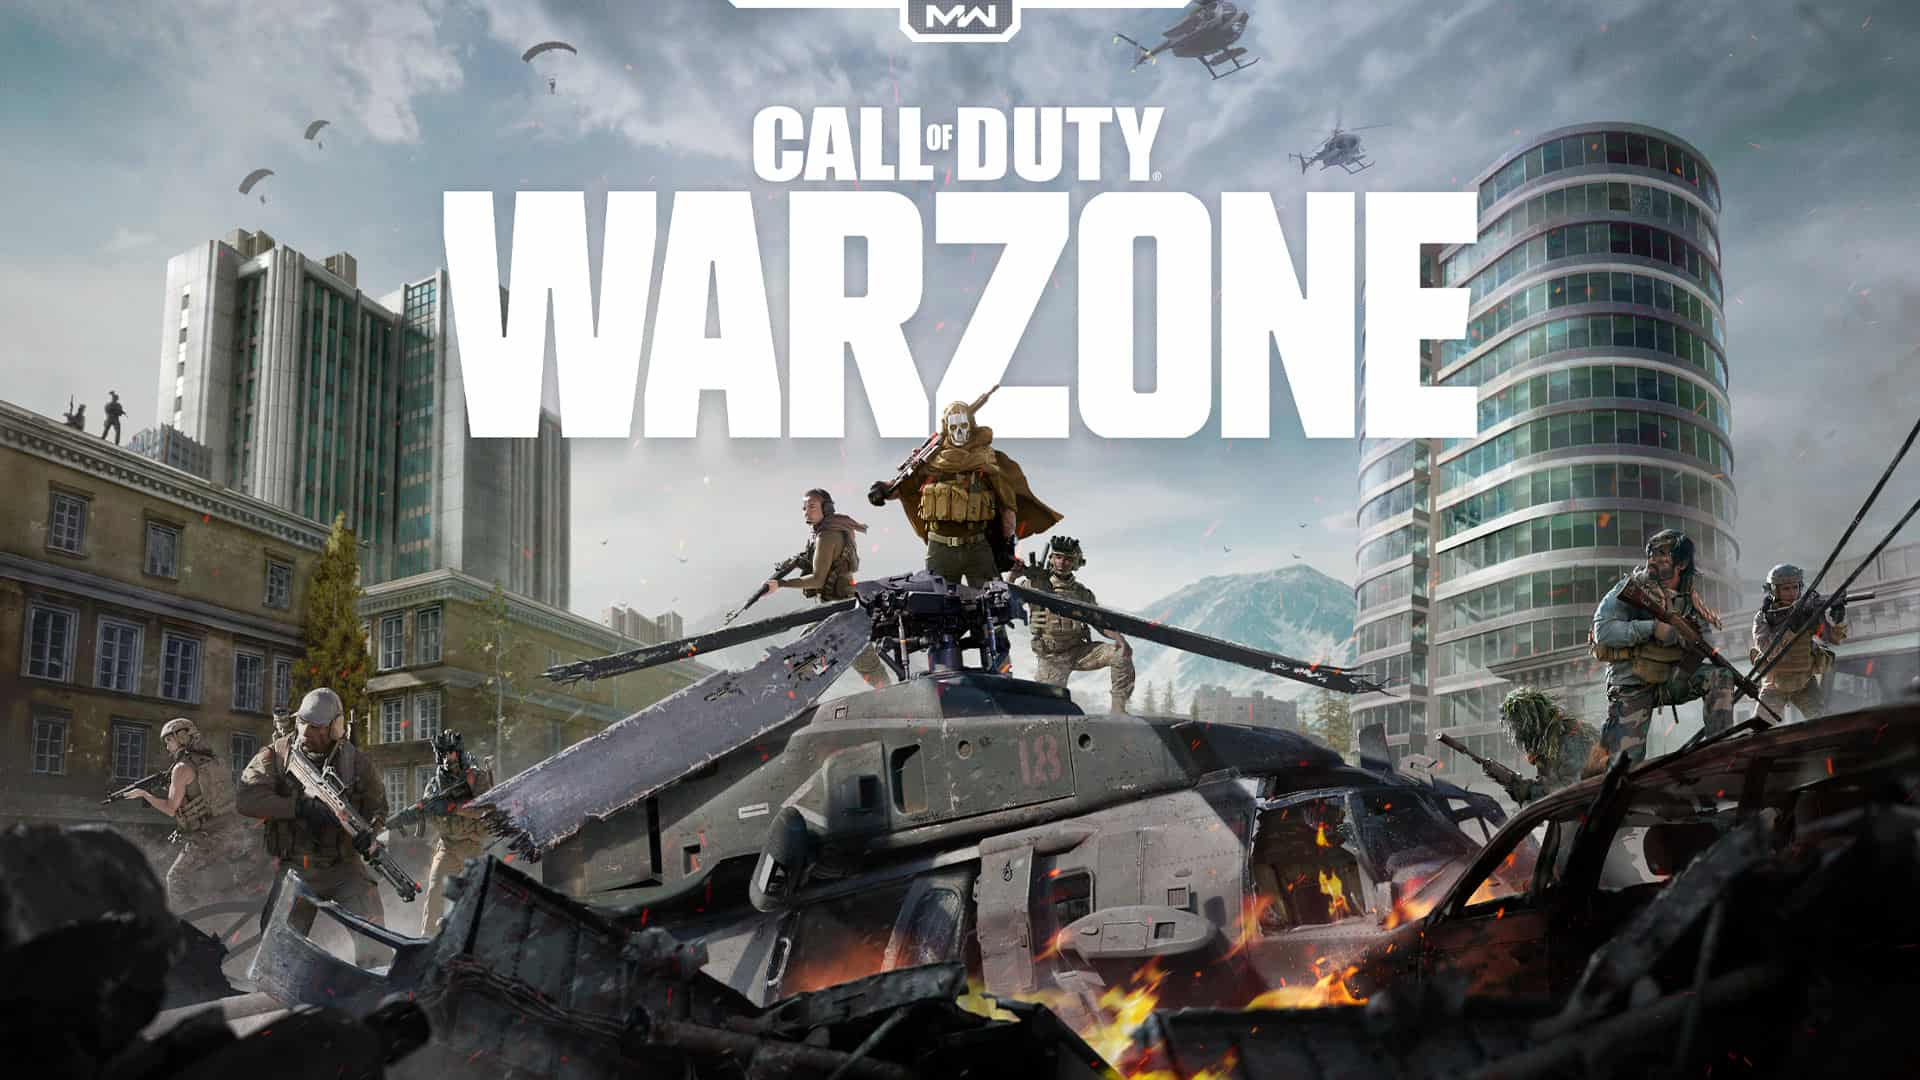 Call Of Duty Warzone reached 15 million players in 3 days!